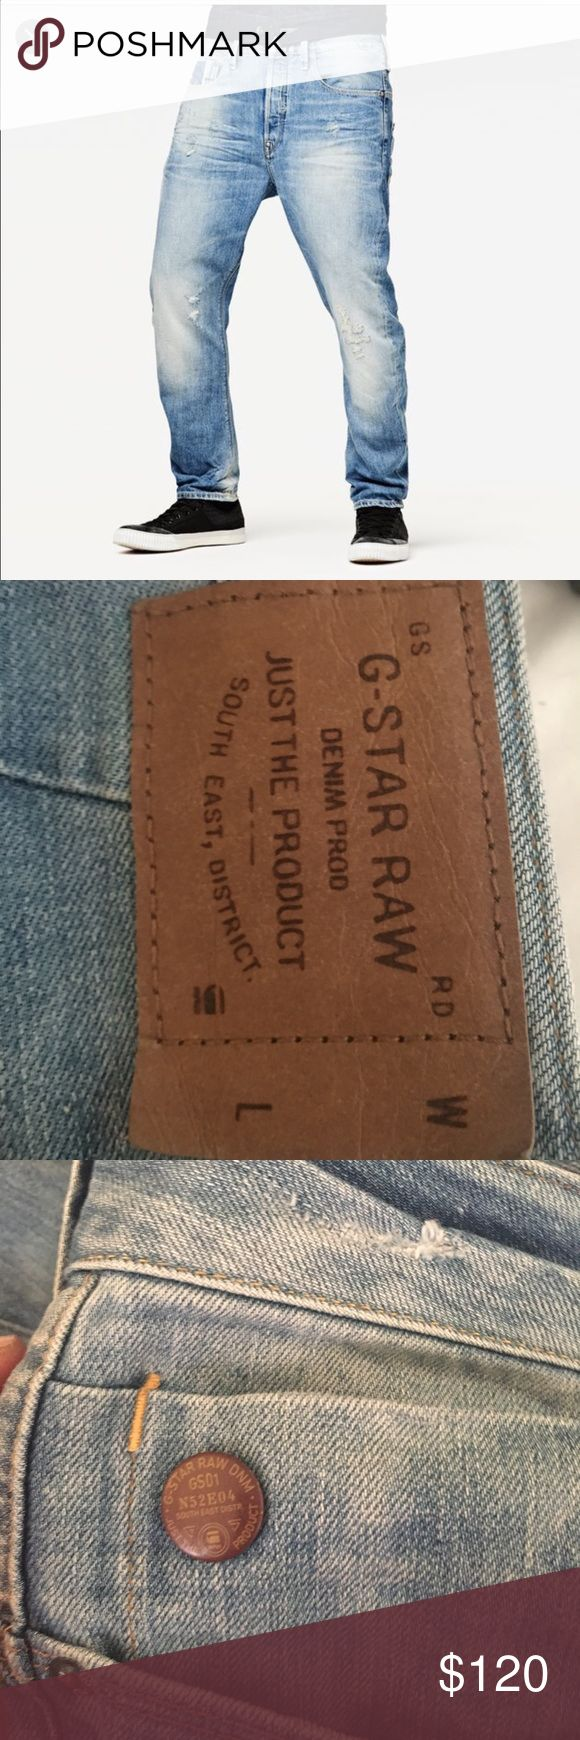 Type C 3D loose tapered g-star RAW jeans These jeans have been worn 2 times maybe. Freshly dry cleaned (though they can be washed in the normal wash) These were bought directly from a gstar shop for $170. 36x36 no imperfections. I took the last photo for color representation. G-Star Jeans Slim